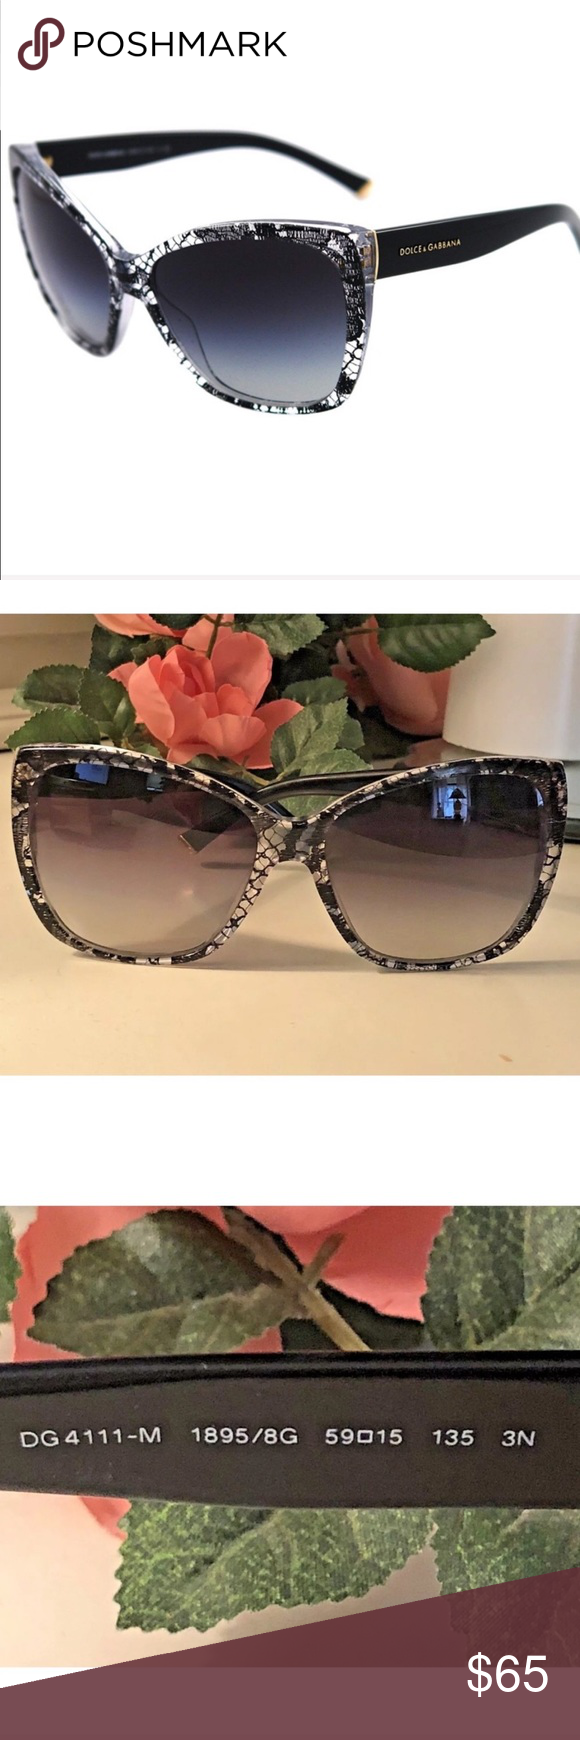 a115ec116651 Dolce & Gabbana GUC Black Lace Sunglasses DG 4111 These absolutely  stunning Authentic Dolce &